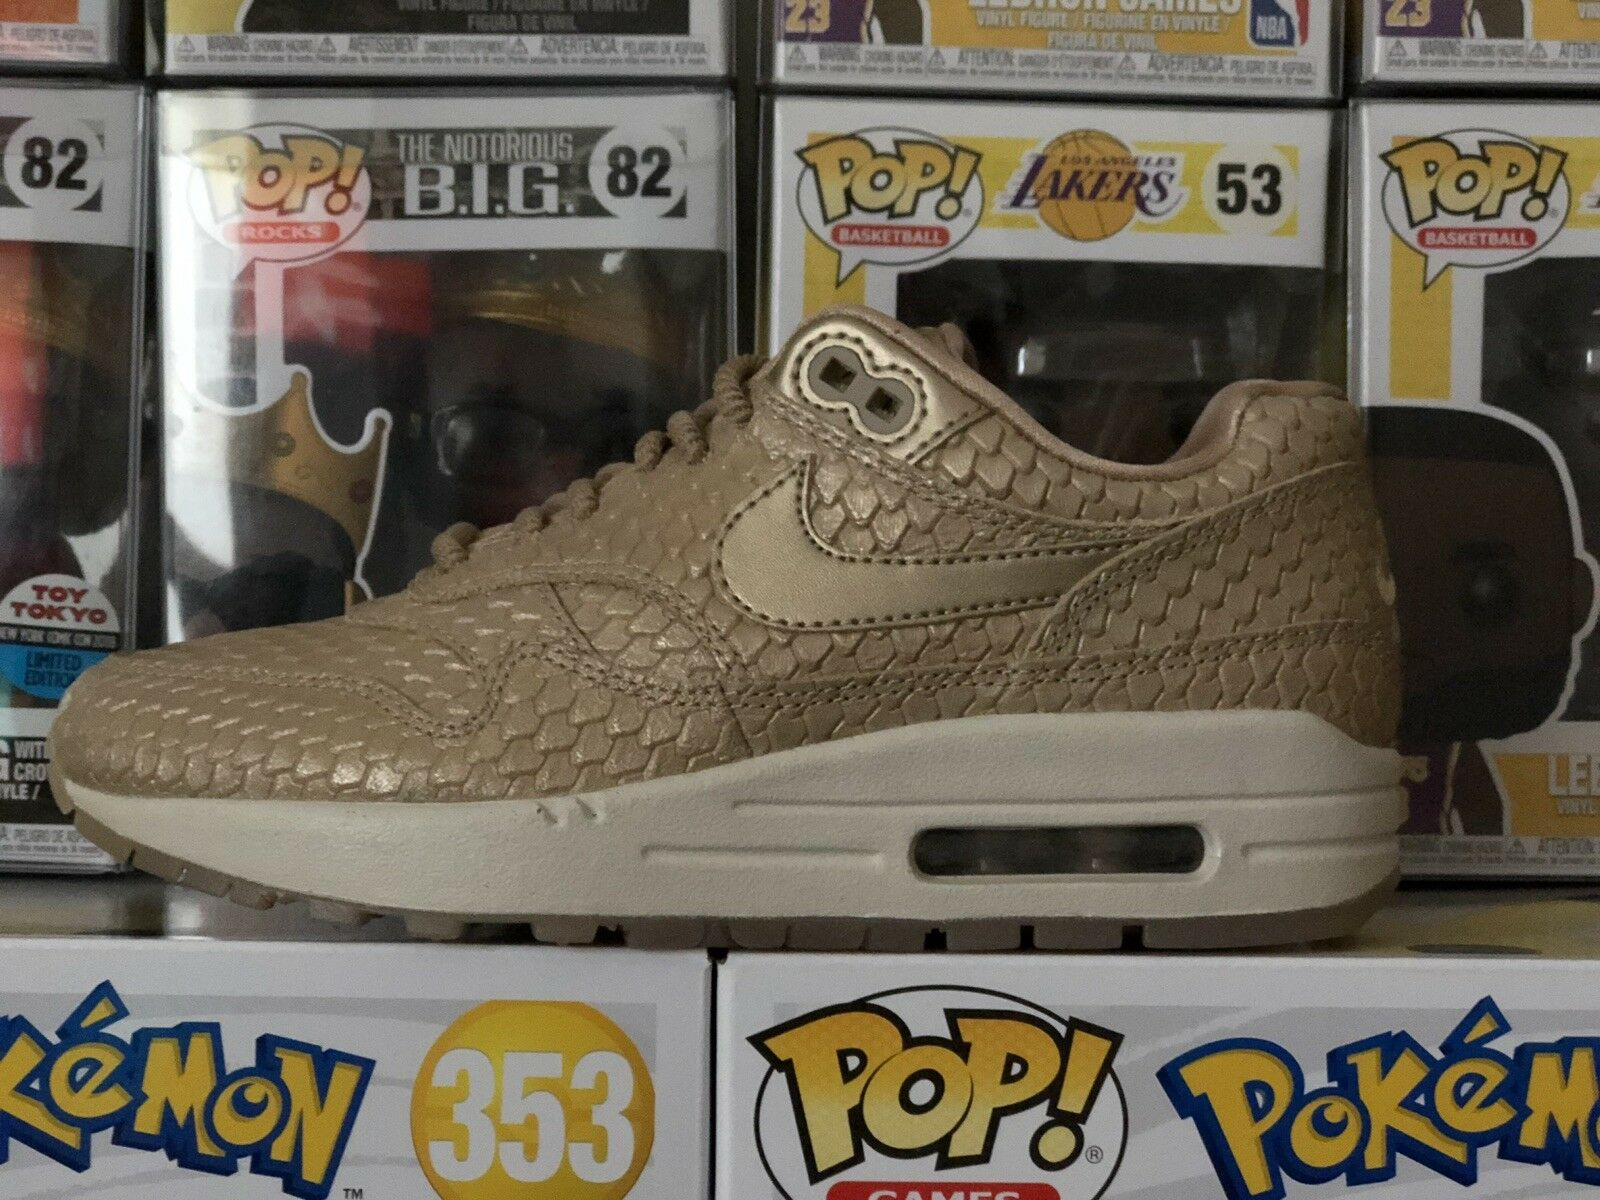 BRAND NEW NIKE AIR MAX 1 (454746-900) 7.5 'gold FISH' blueR blueR-LT OREWOOD BROWN